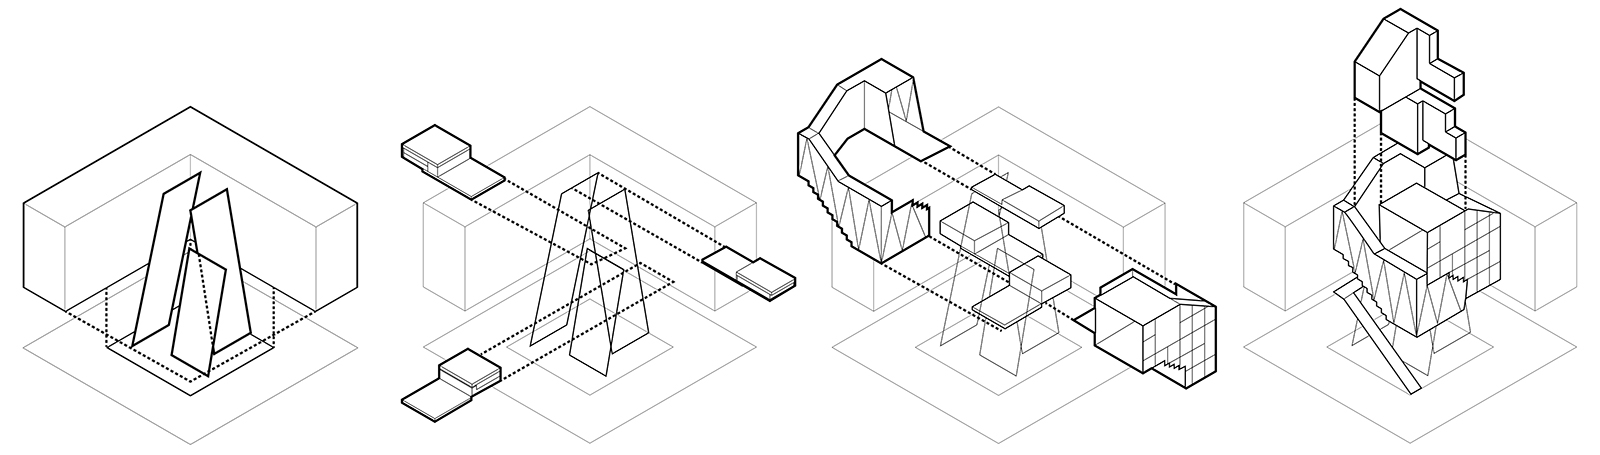 Sequence showing the modular components for the CTST construction with frames, bed modules, storage and services